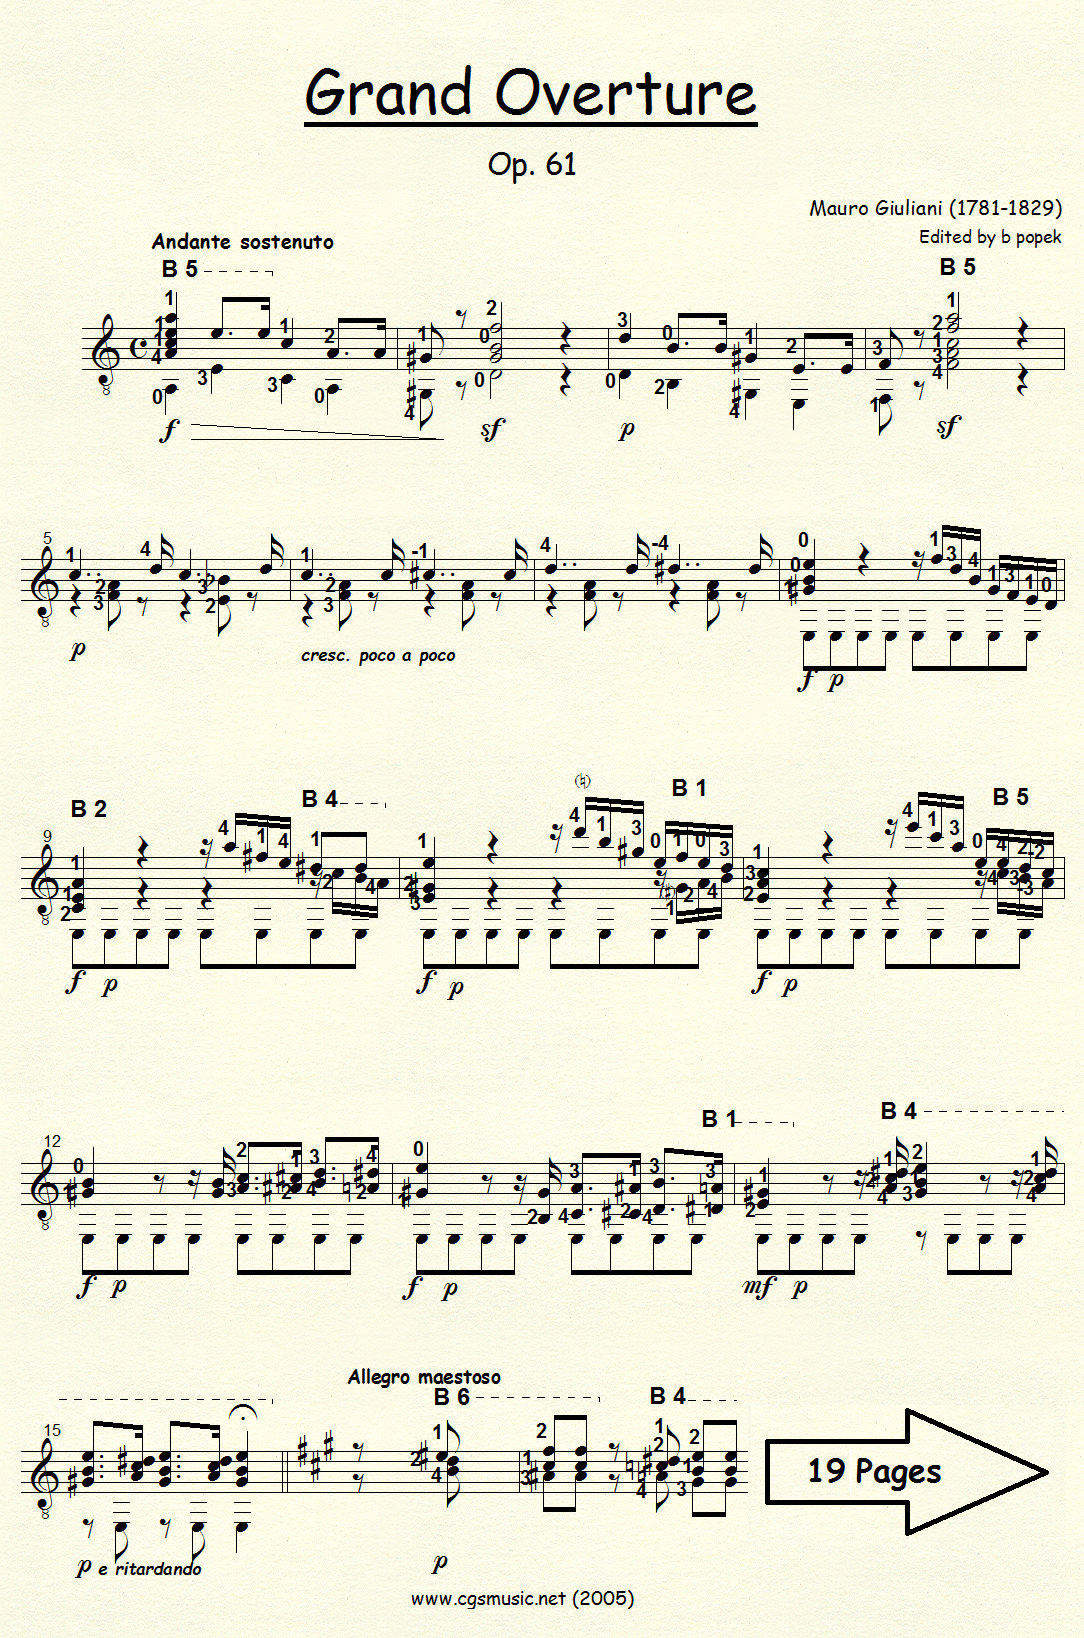 Grand Overture Op 61 (Giuliani) for Classical Guitar in Standard Notation